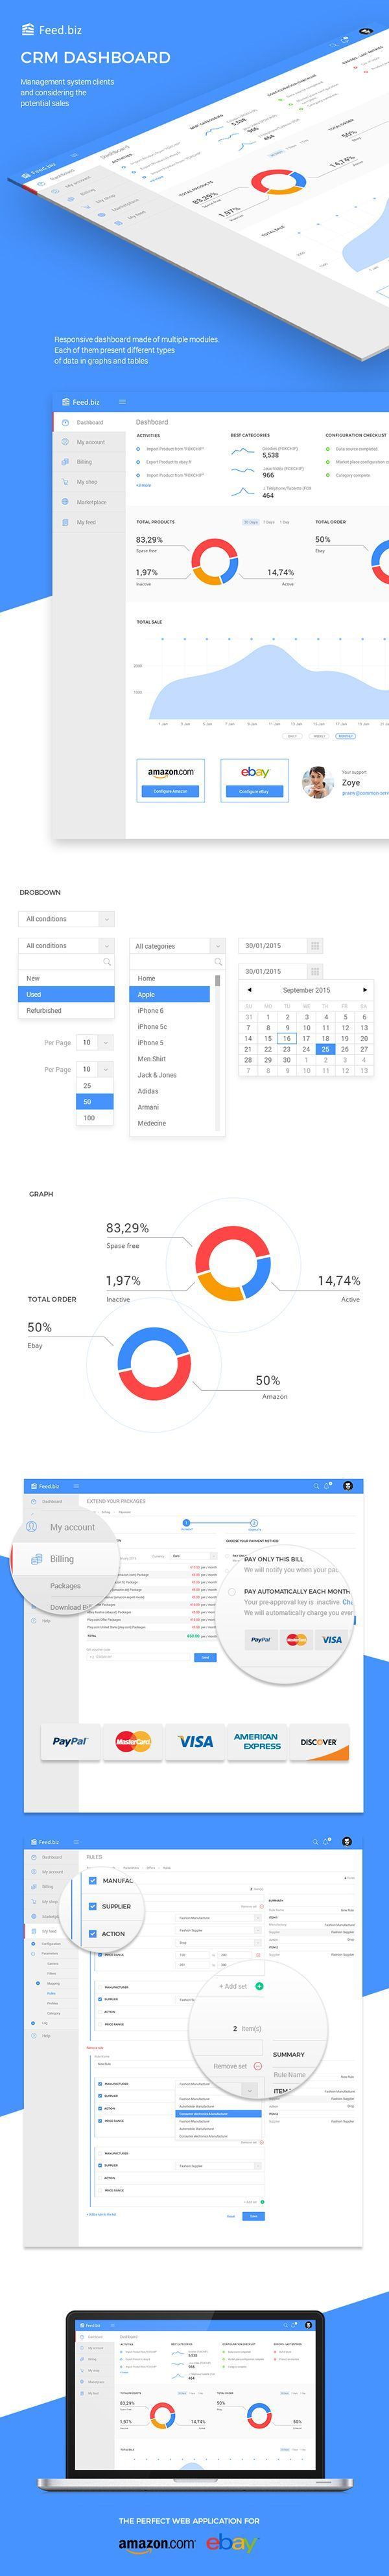 Retail SaaS Dashboard on Behance